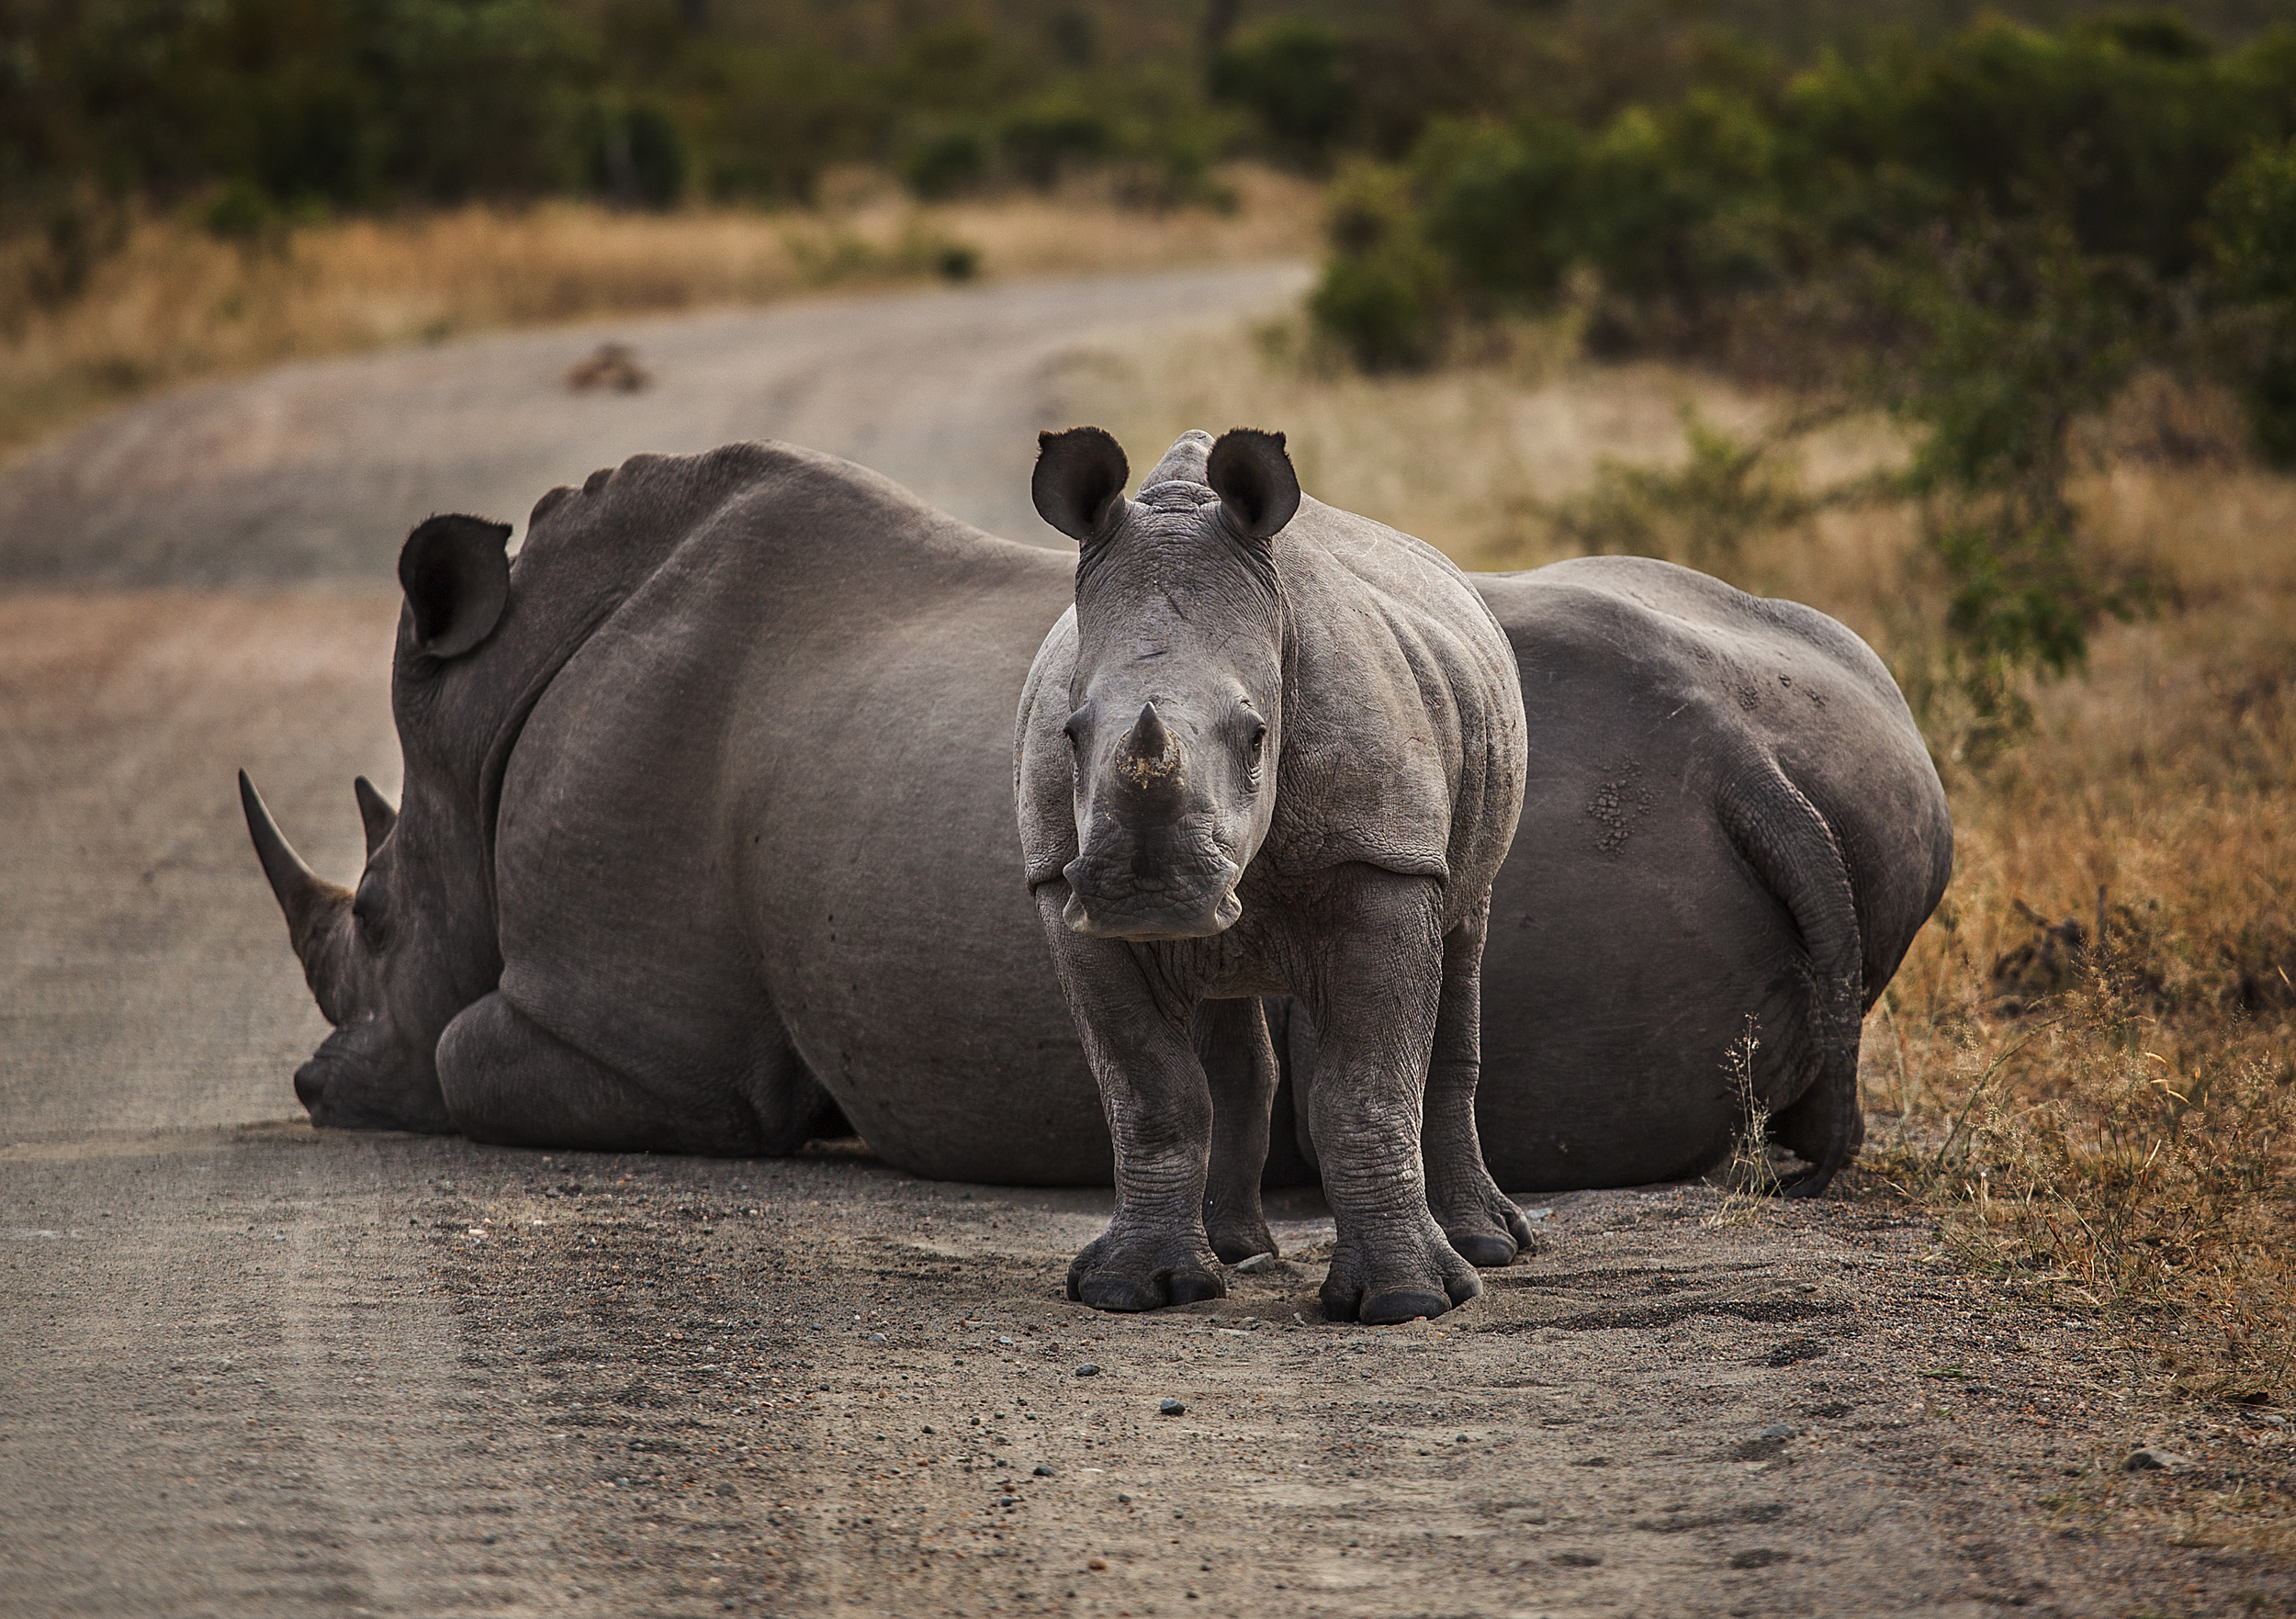 the rhinos liked laying on the road in the early mornings for extra warmth